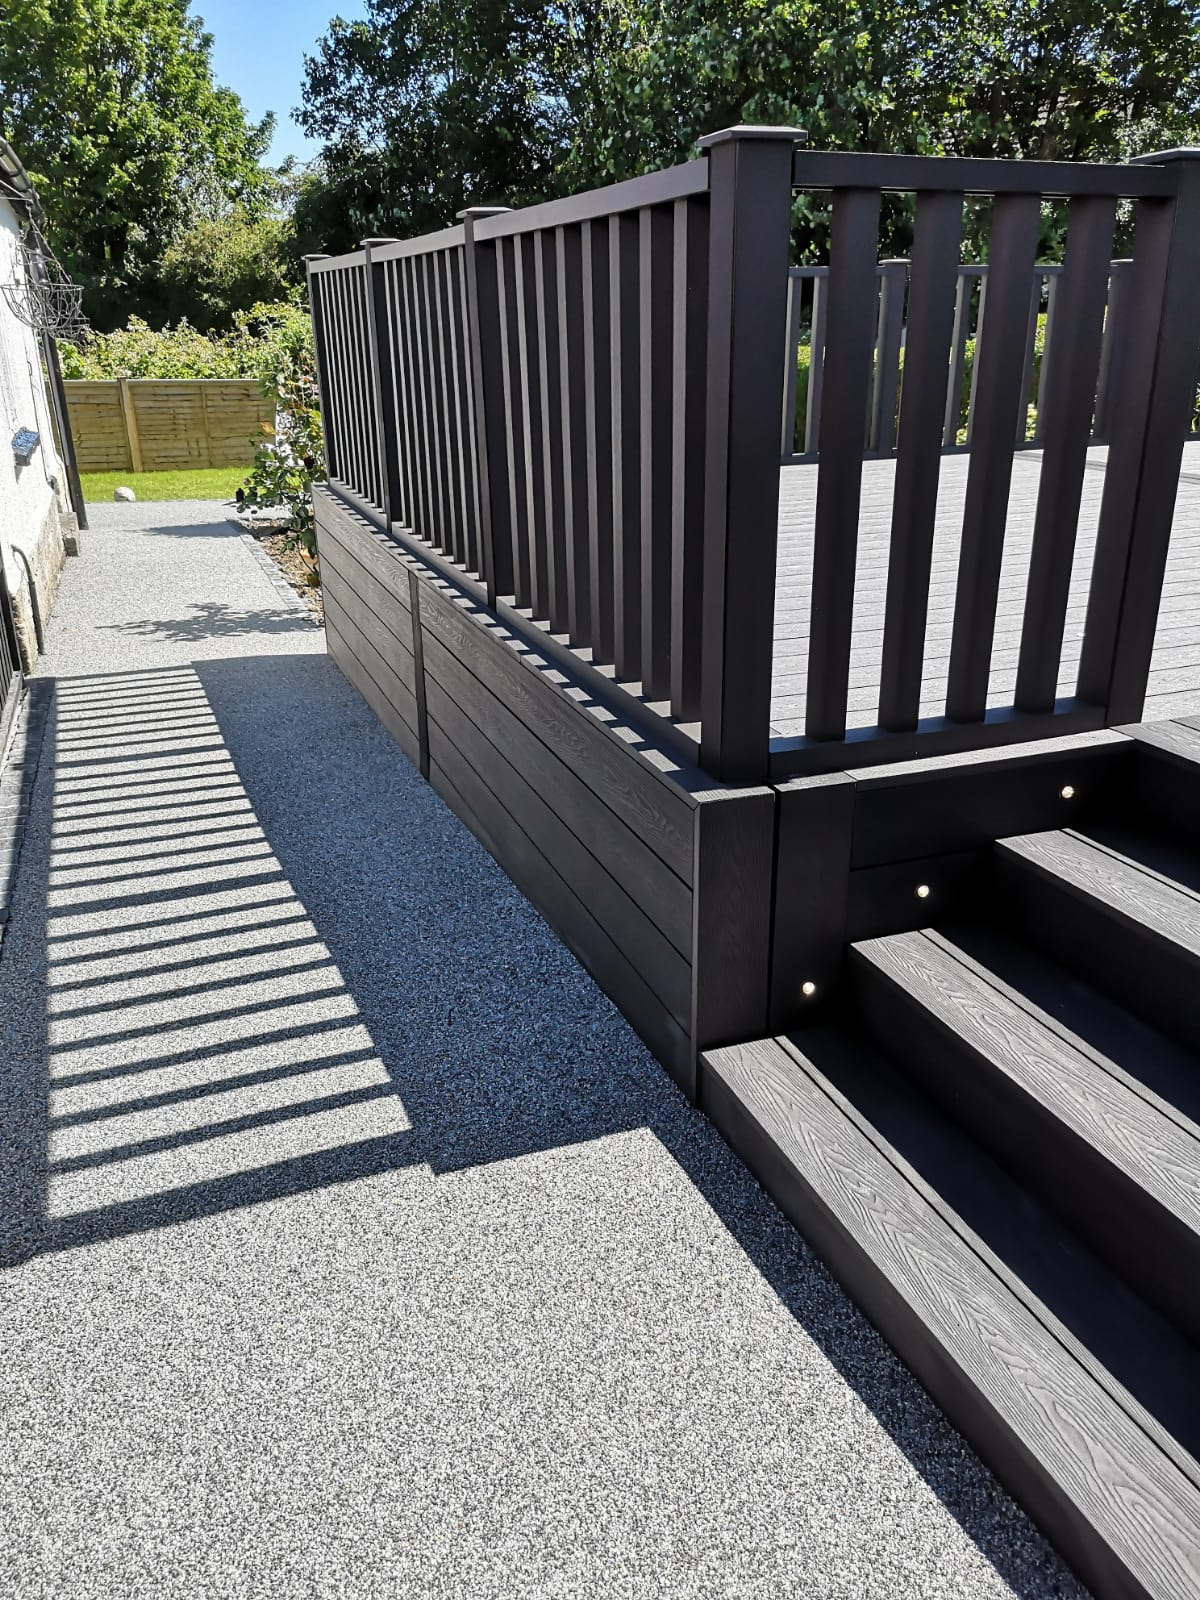 Heritage Dark Charcoal Deep Embossed Composite Decking with Composite Handrails and LED Li